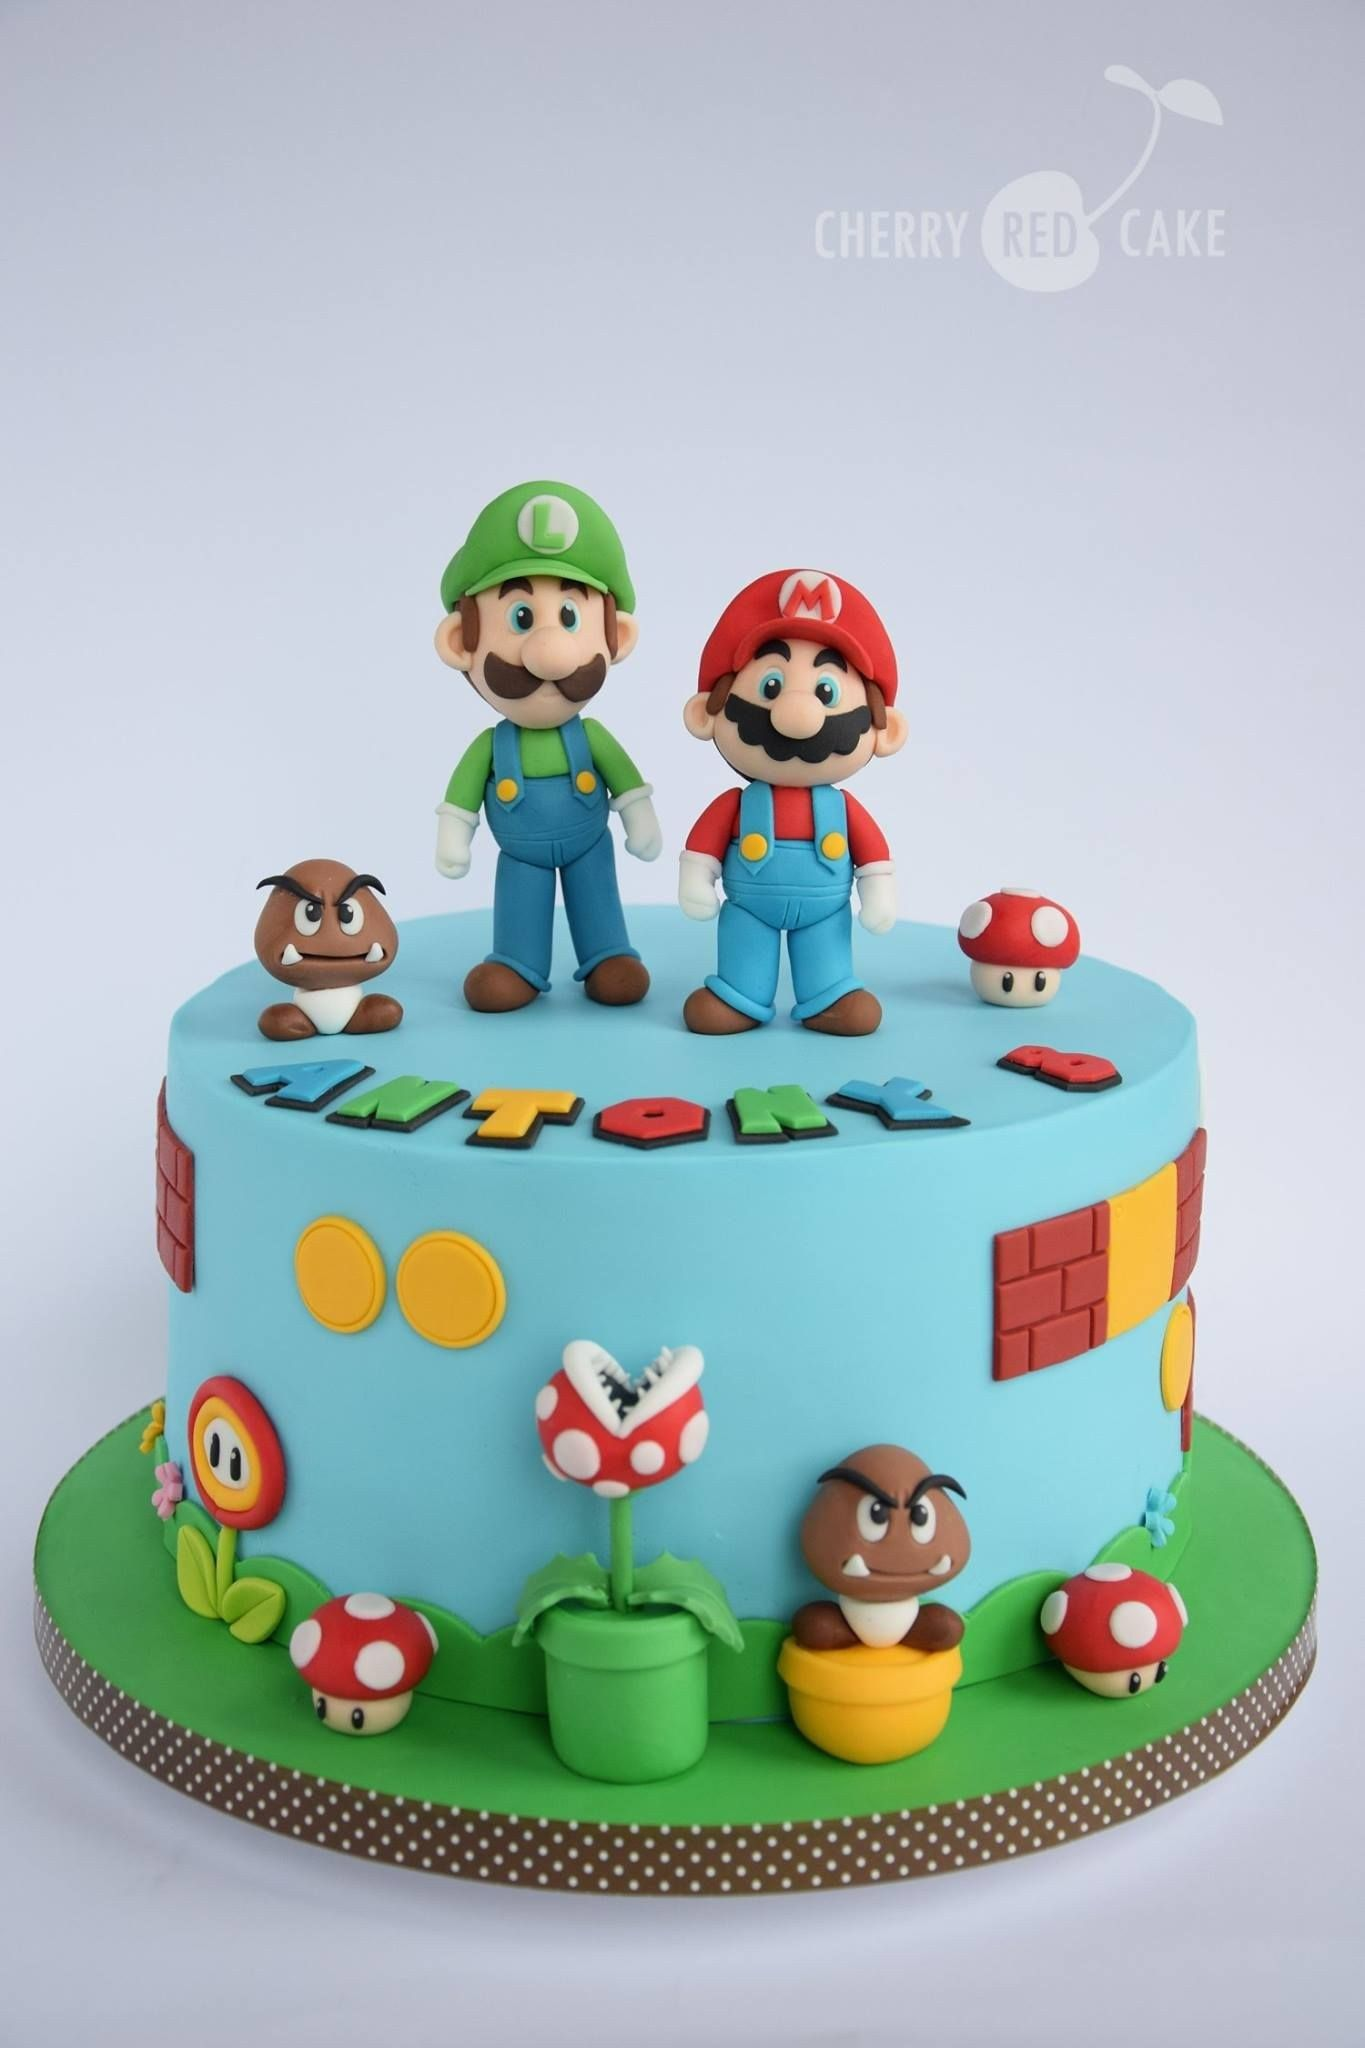 Groovy 32 Brilliant Photo Of Mario Bros Birthday Cake With Images Funny Birthday Cards Online Alyptdamsfinfo